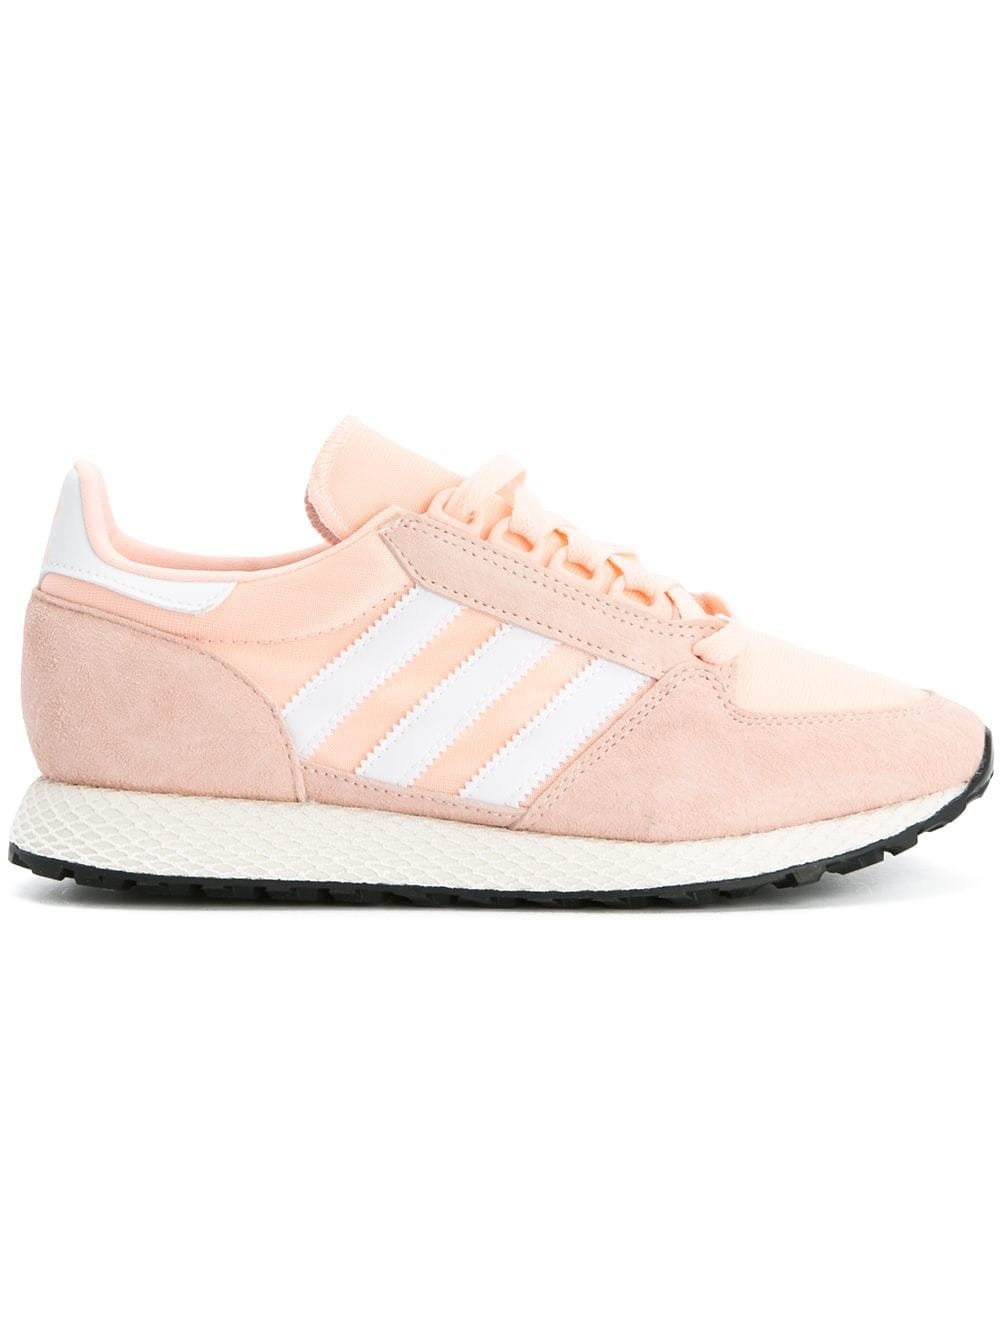 Adidas Forest Grove Femme (Orange/Blanche) B37990